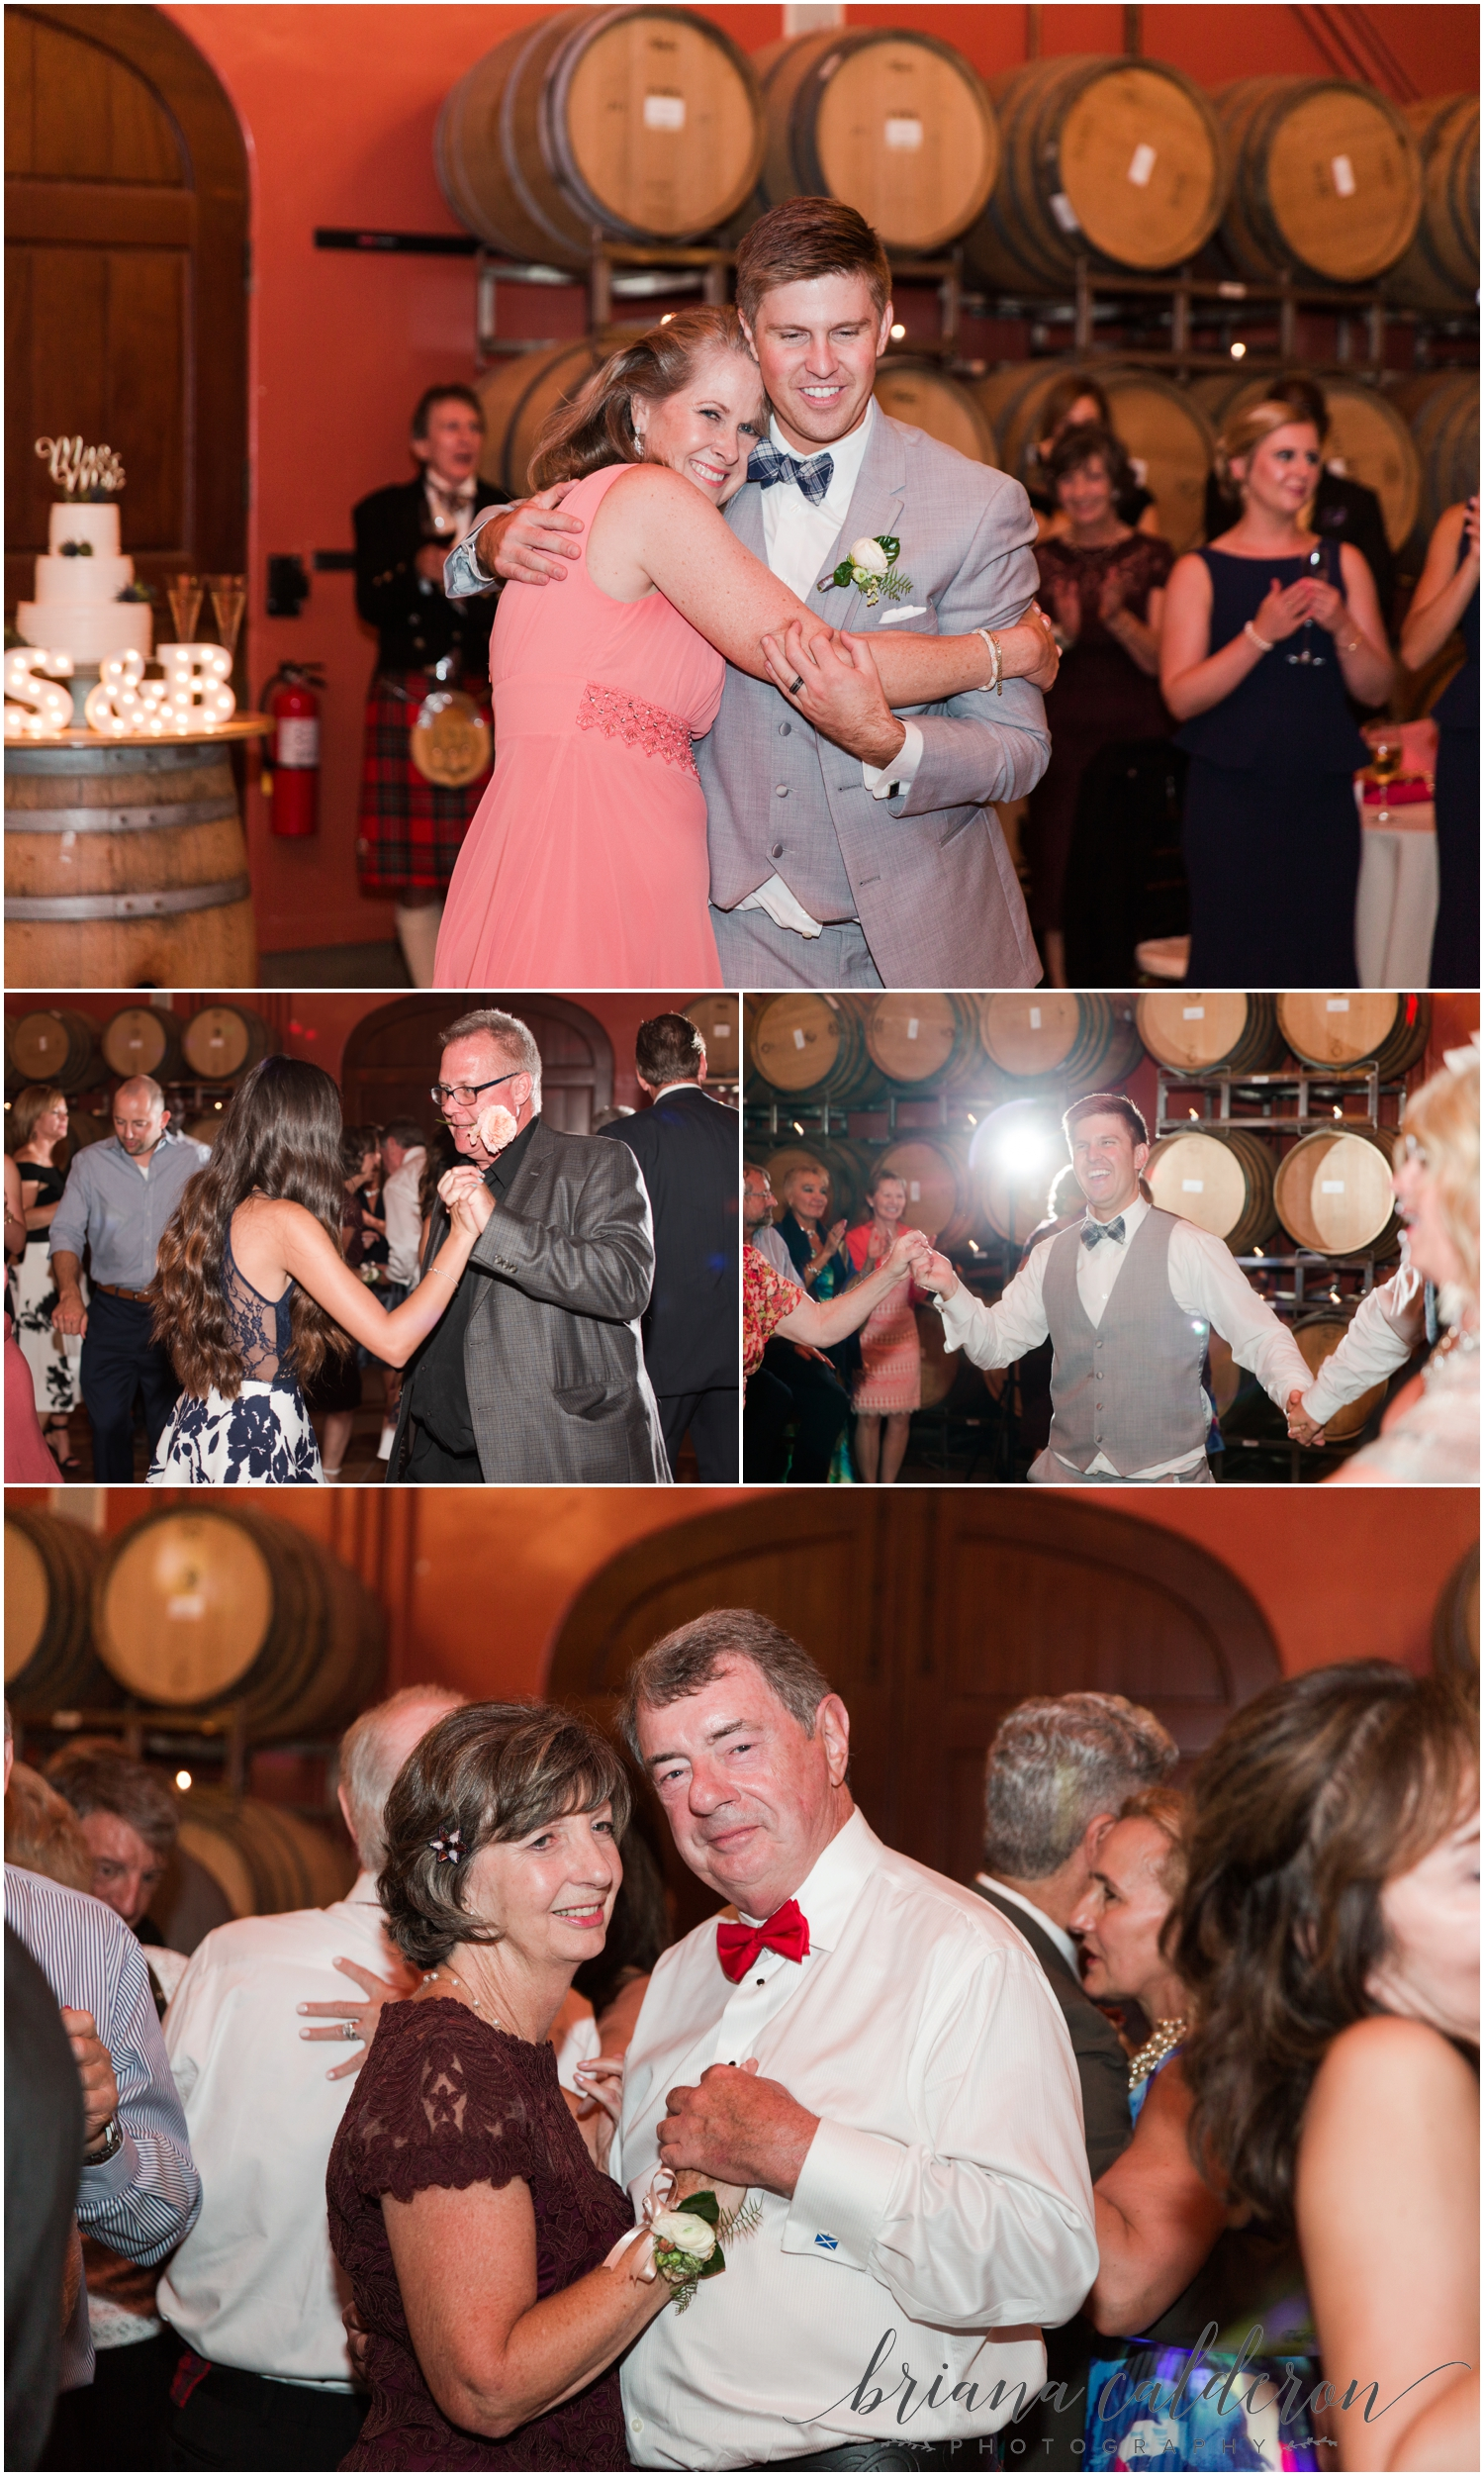 Regale Winery Wedding photos by Briana Calderon Photography_0719.jpg